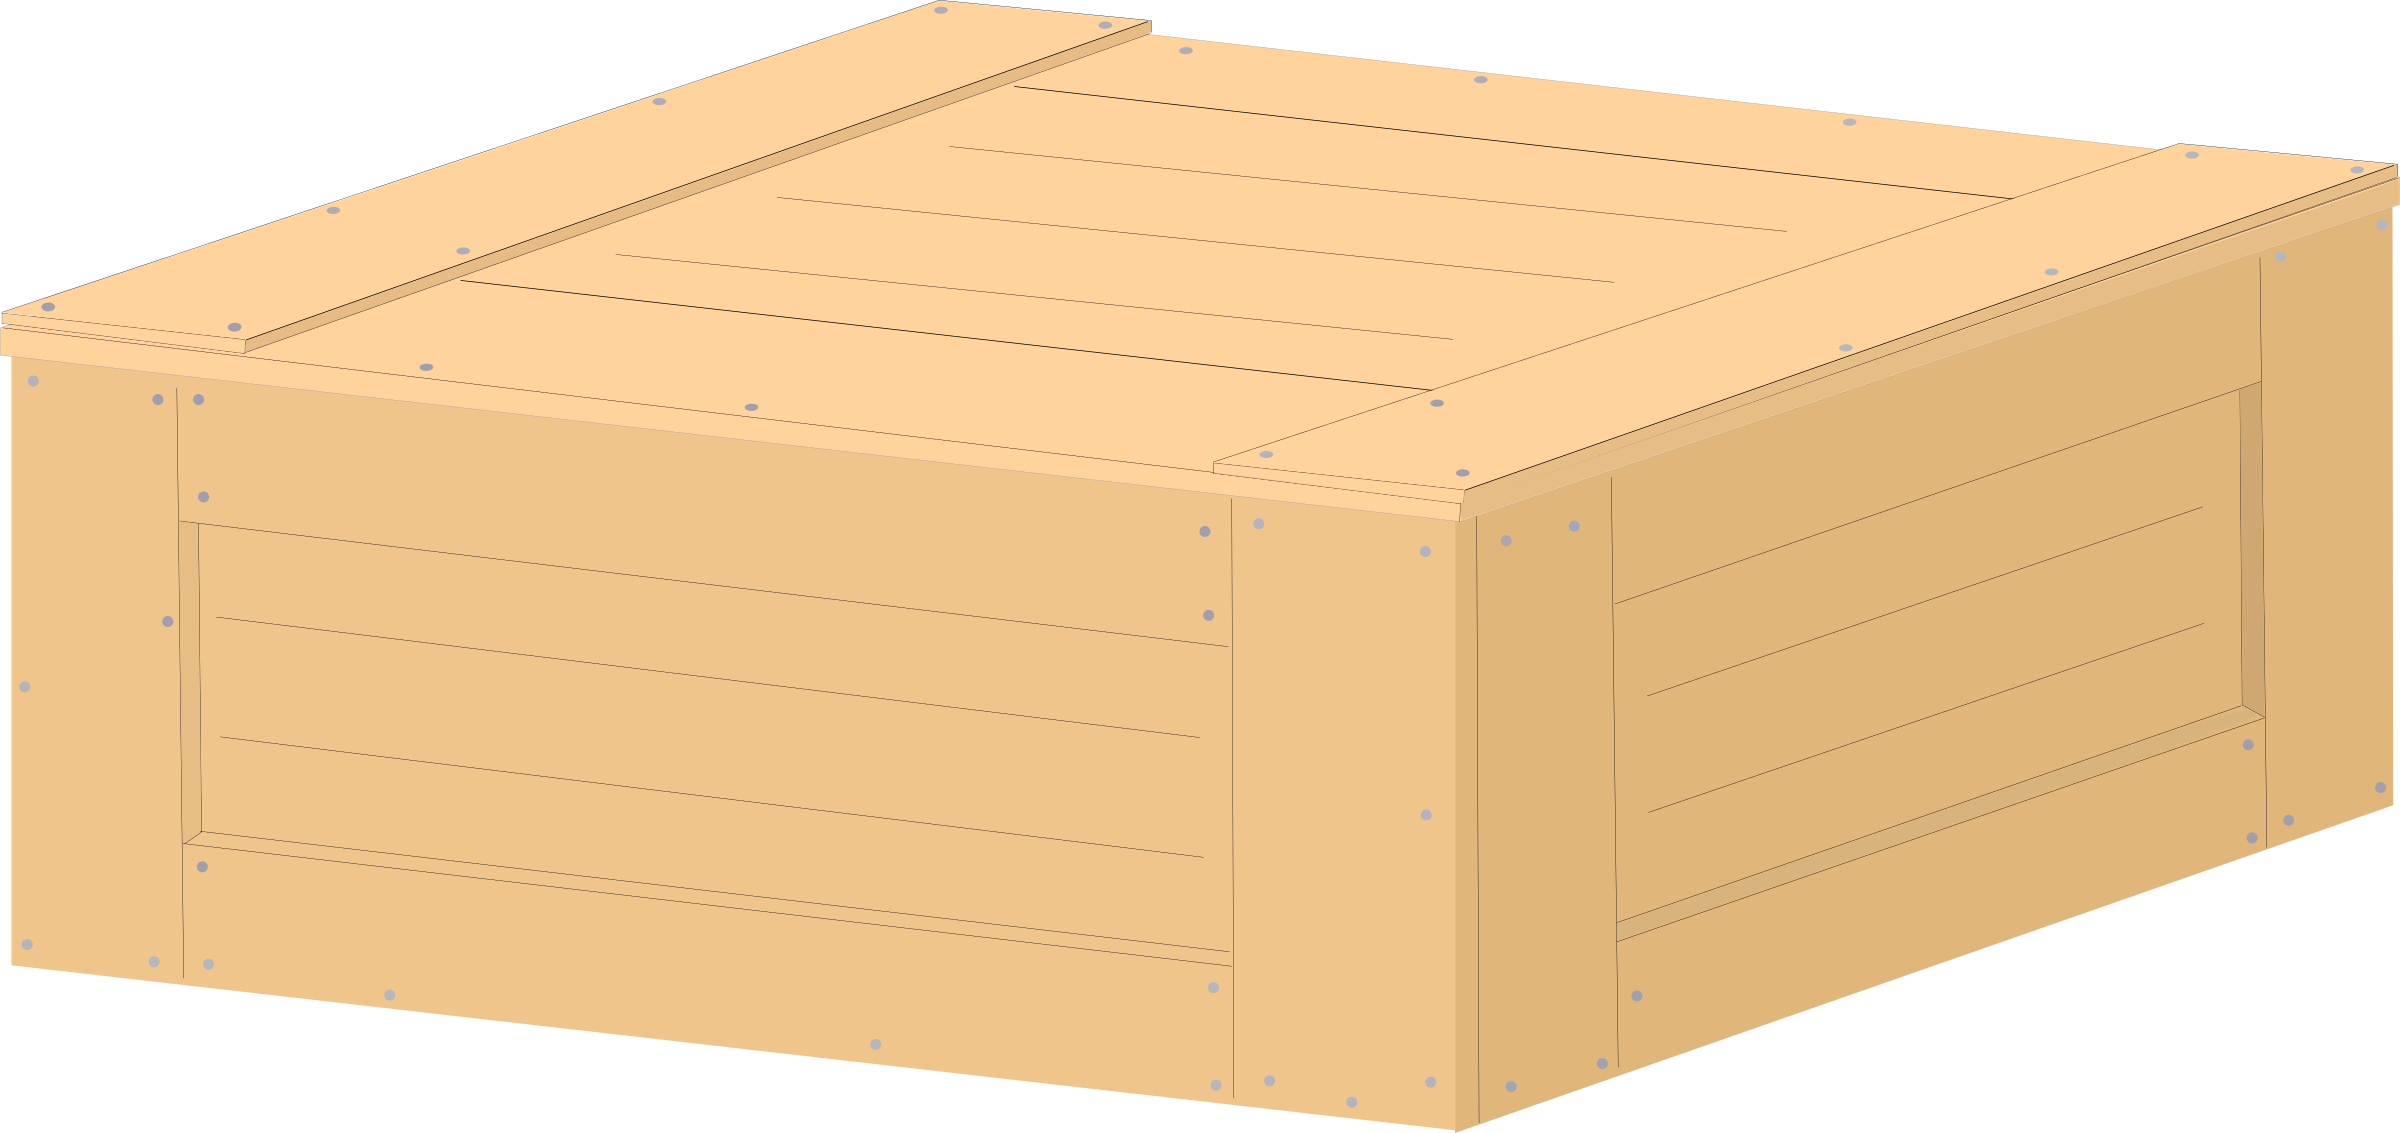 vector library download Box clipart wood box. Crate big image png